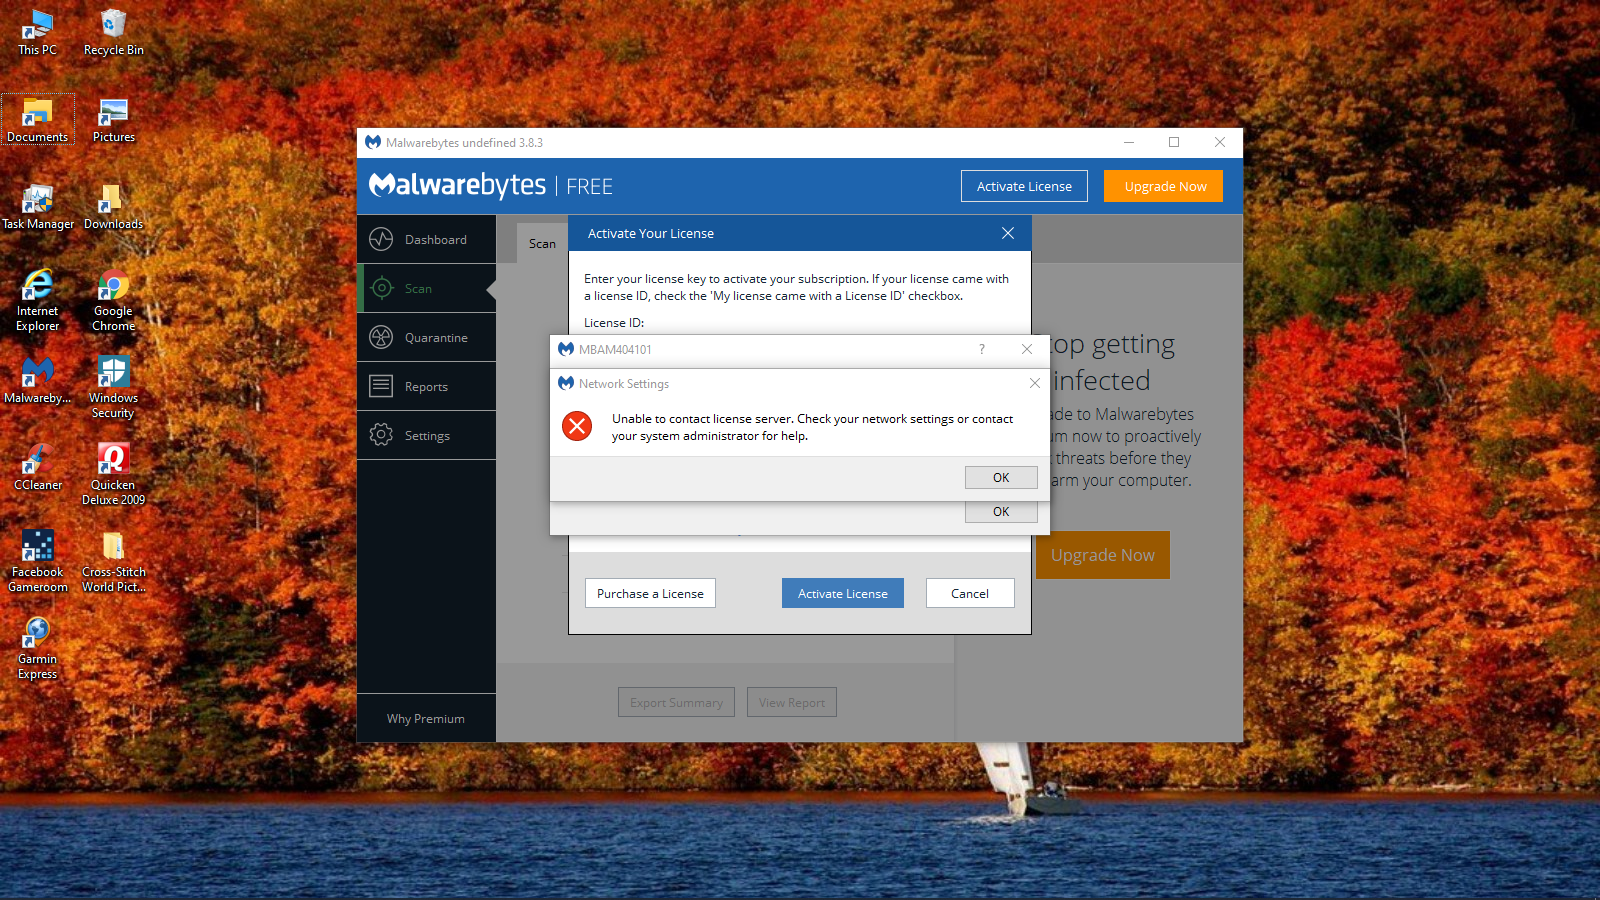 Having a issue with Malwarebytes - Malwarebytes for Windows